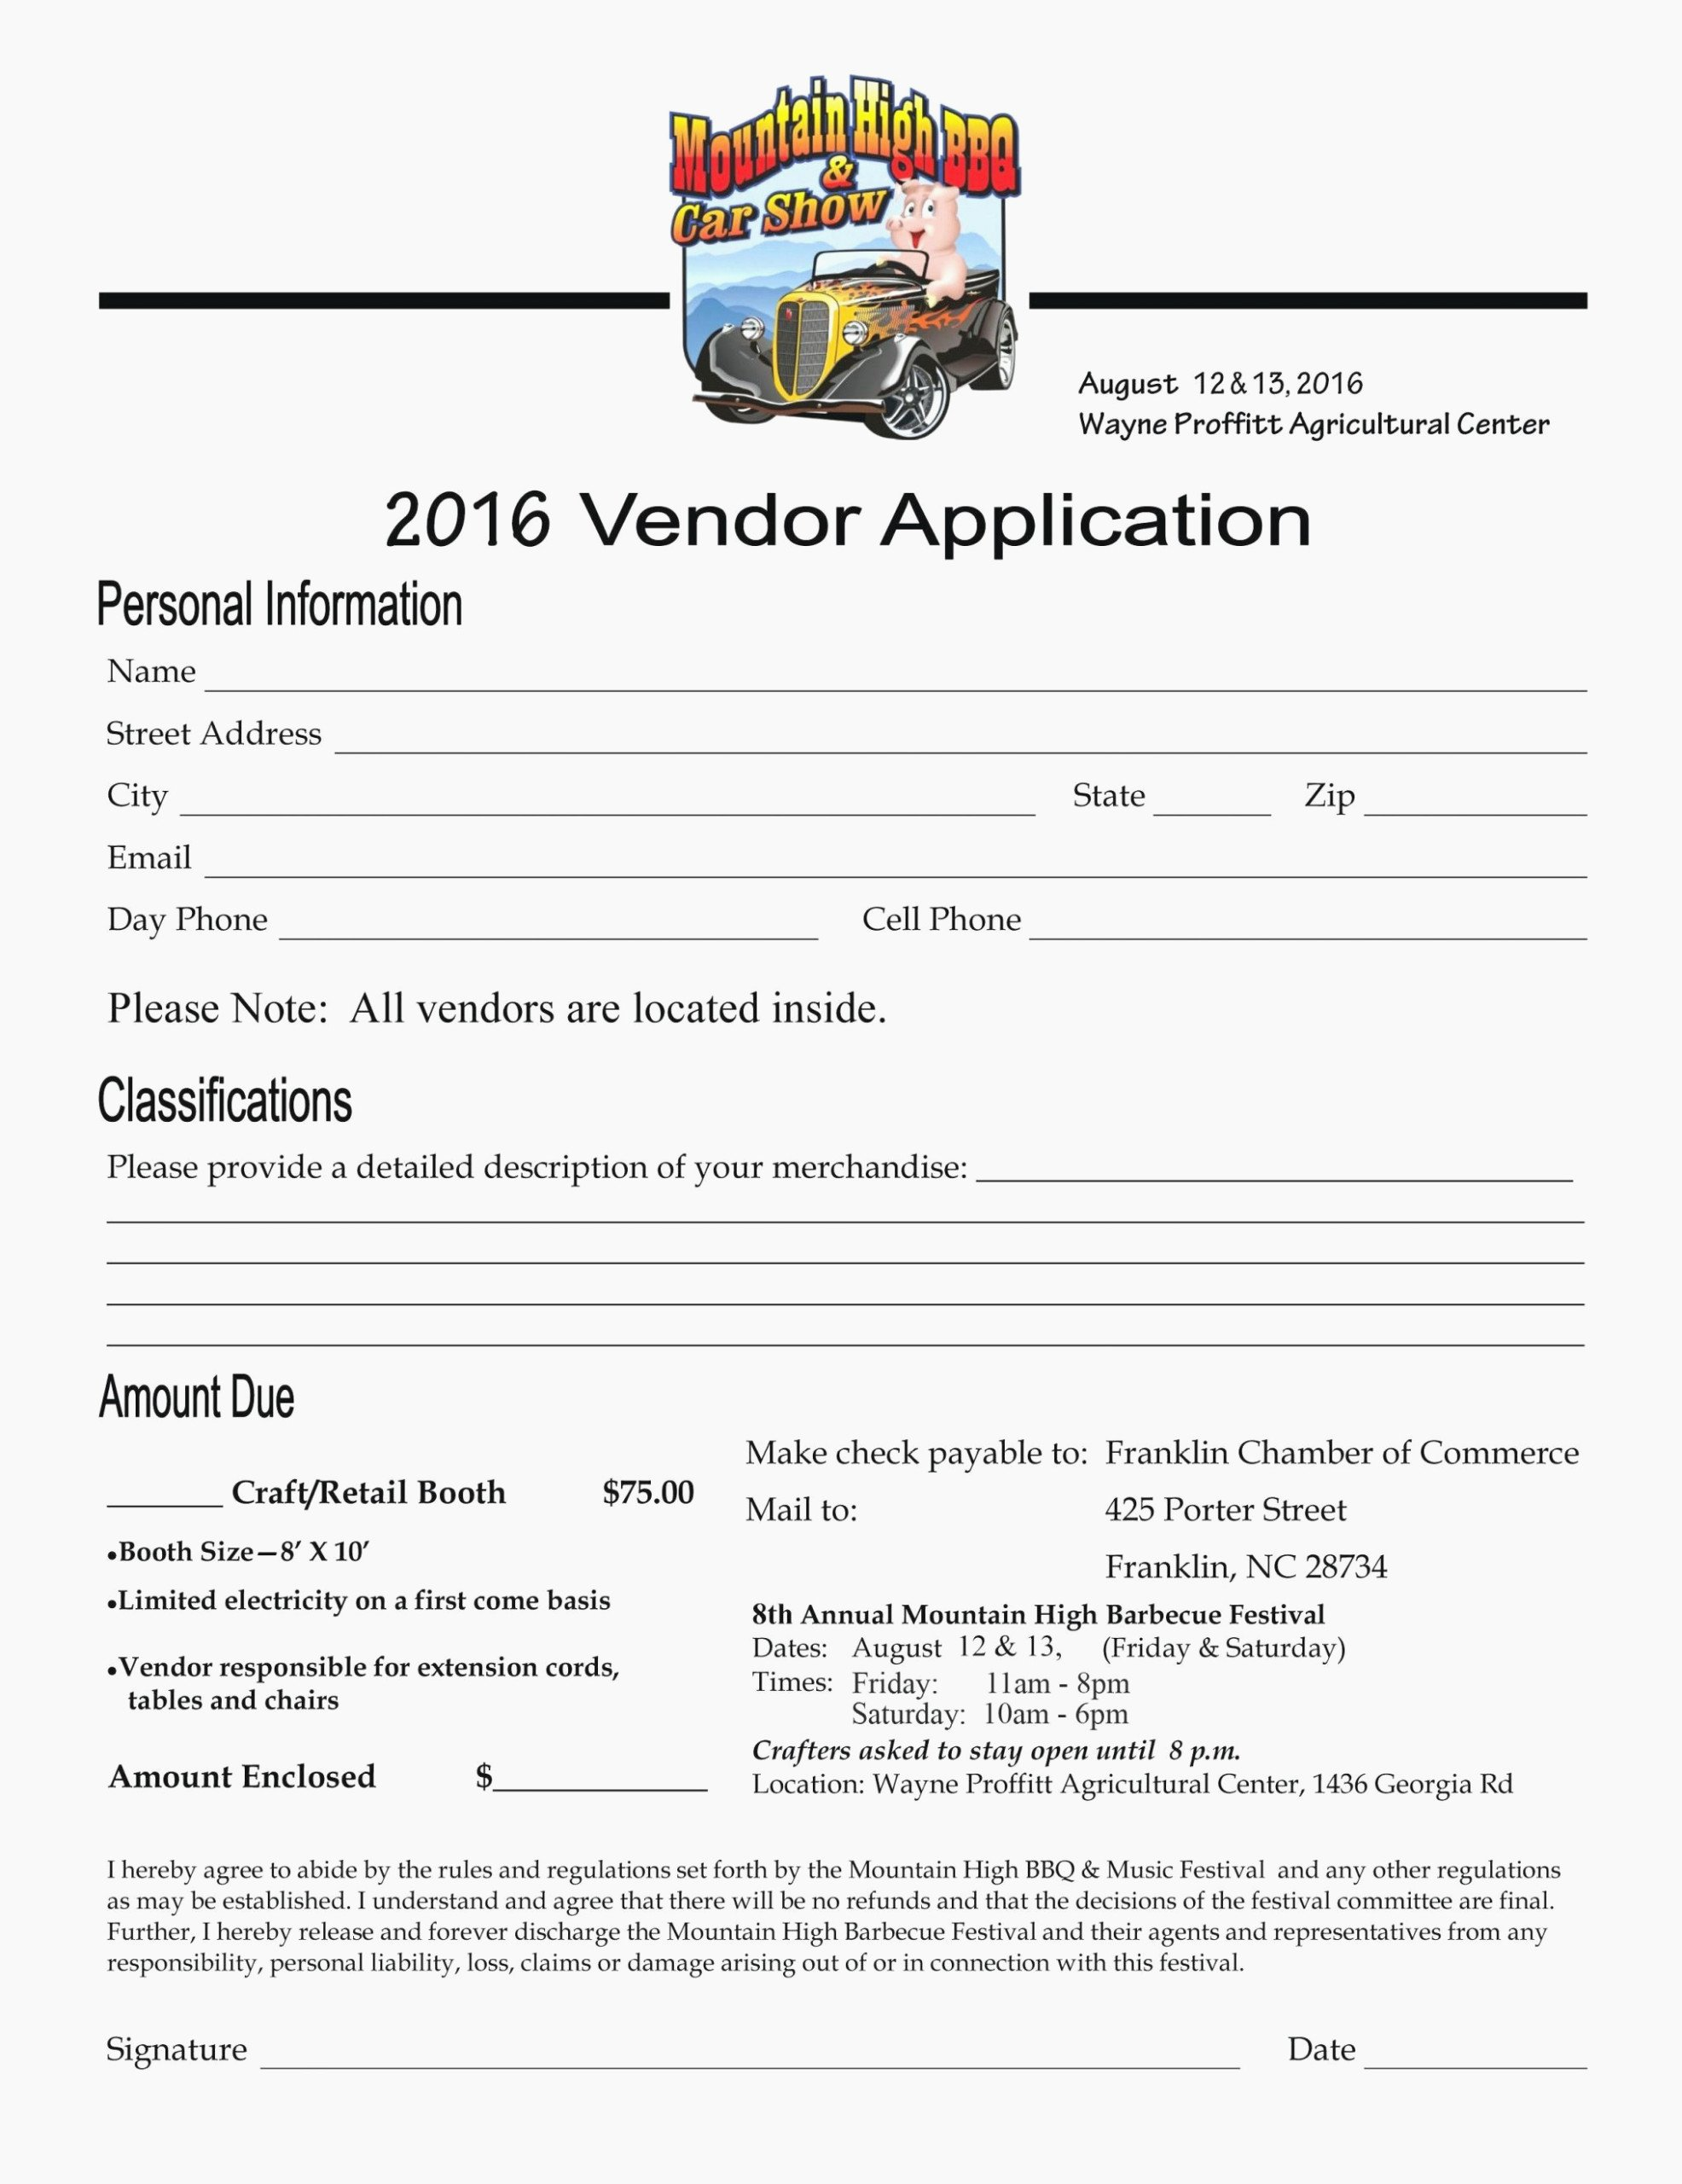 Vendor Application form Template Unique 13 Important Life Lessons Vendor